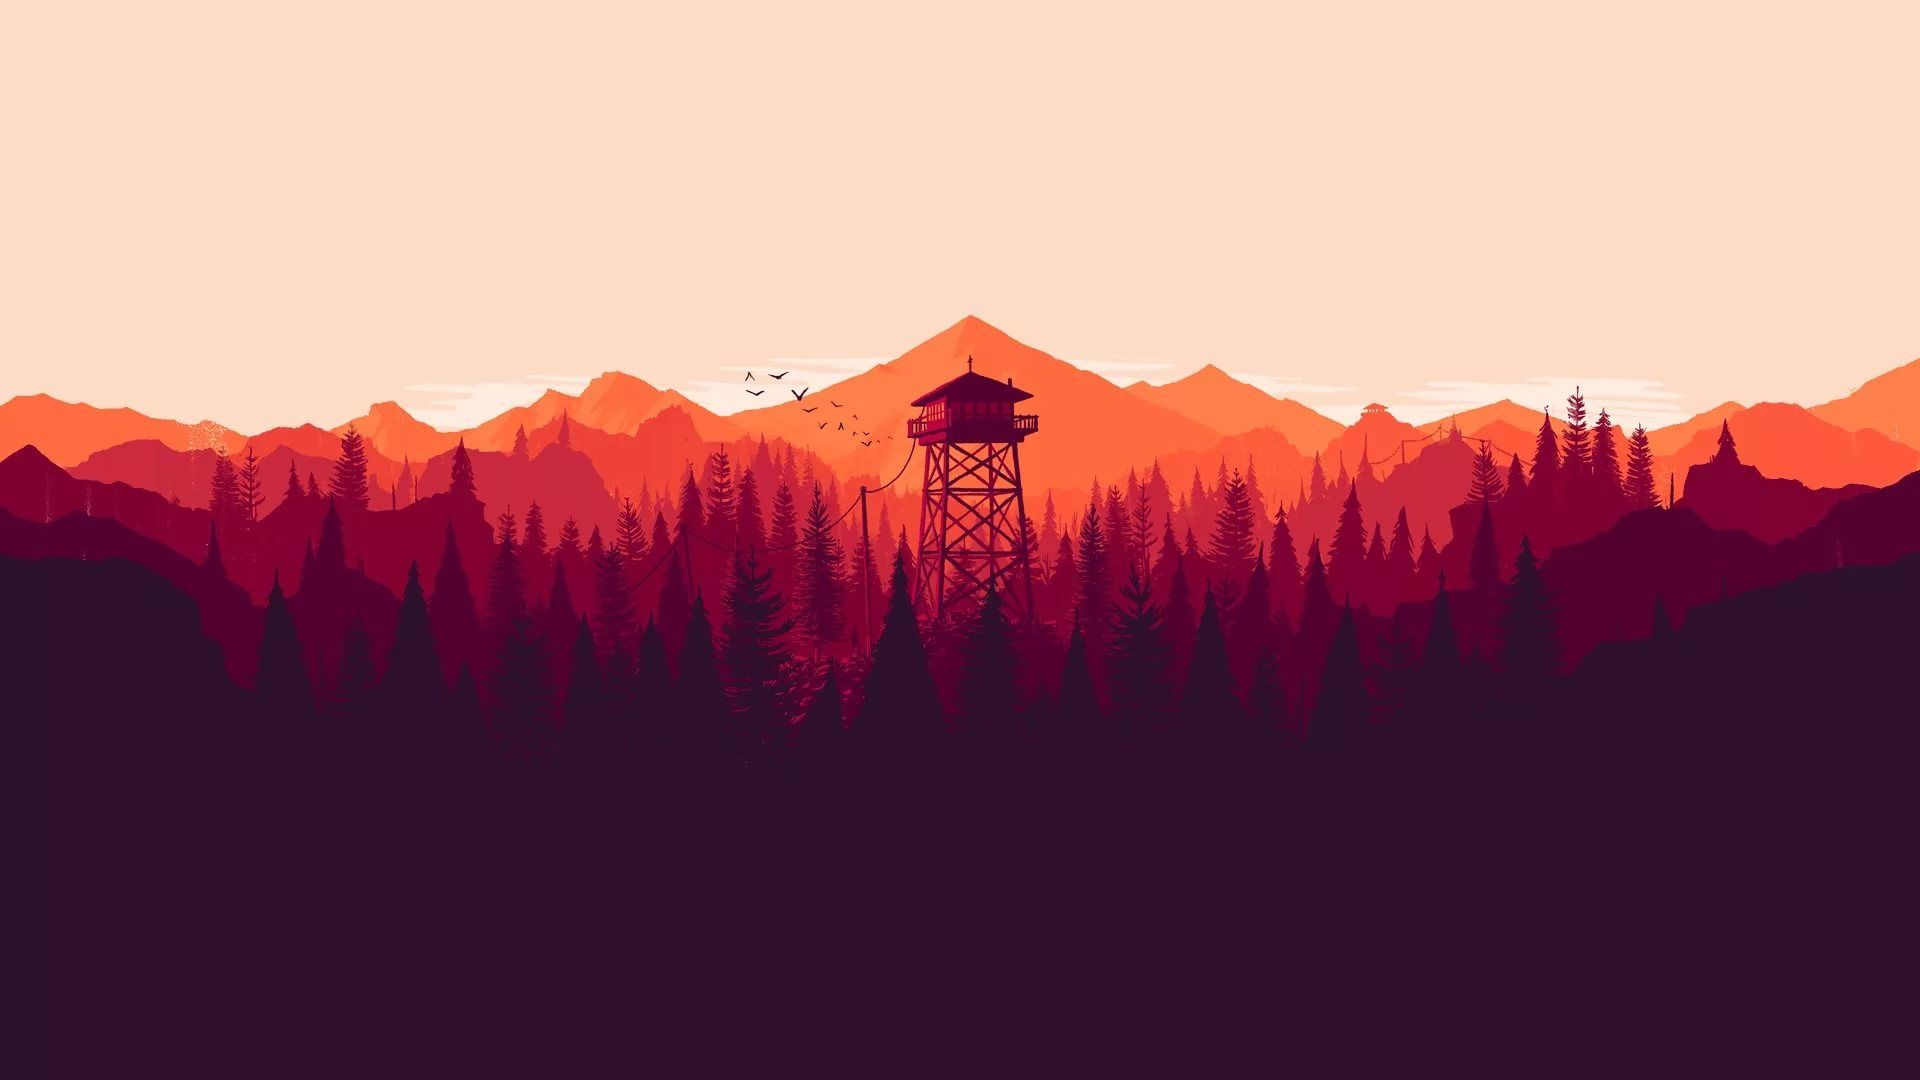 Indie Background wallpaper picture hd